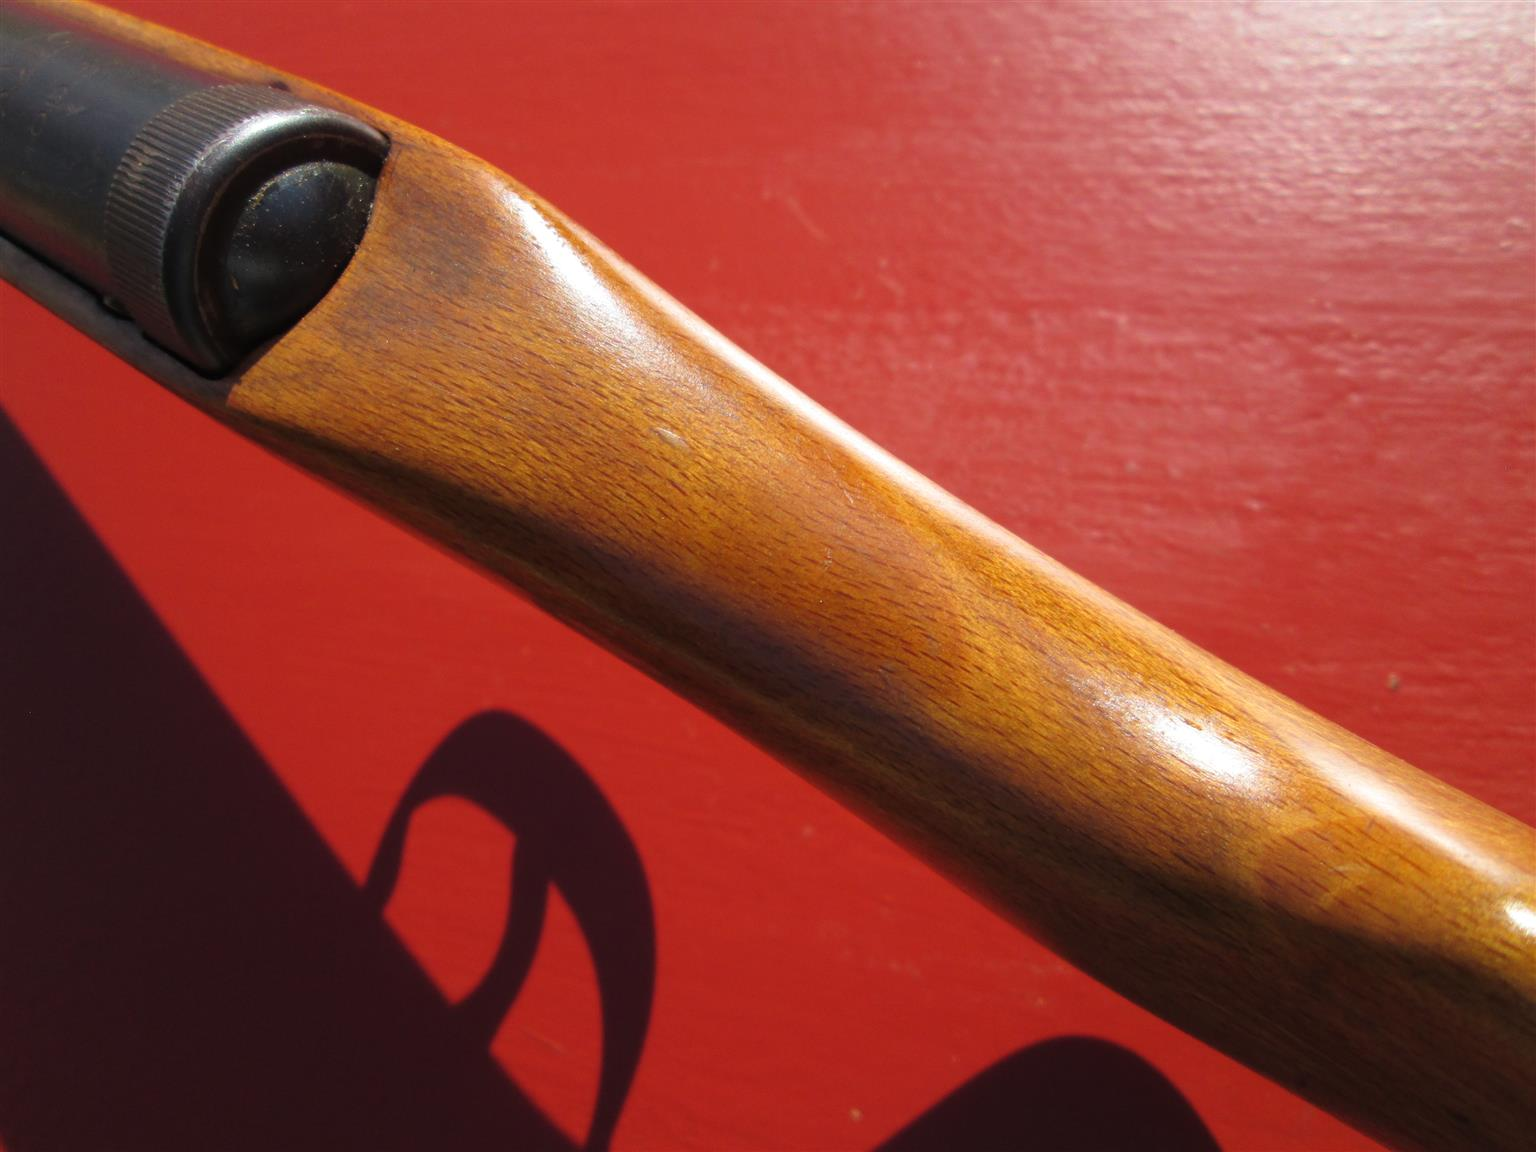 GECADO Mod 23 (1 of 2) (Germany): air-gun, air-rifle, vintage, collectable, fully functional